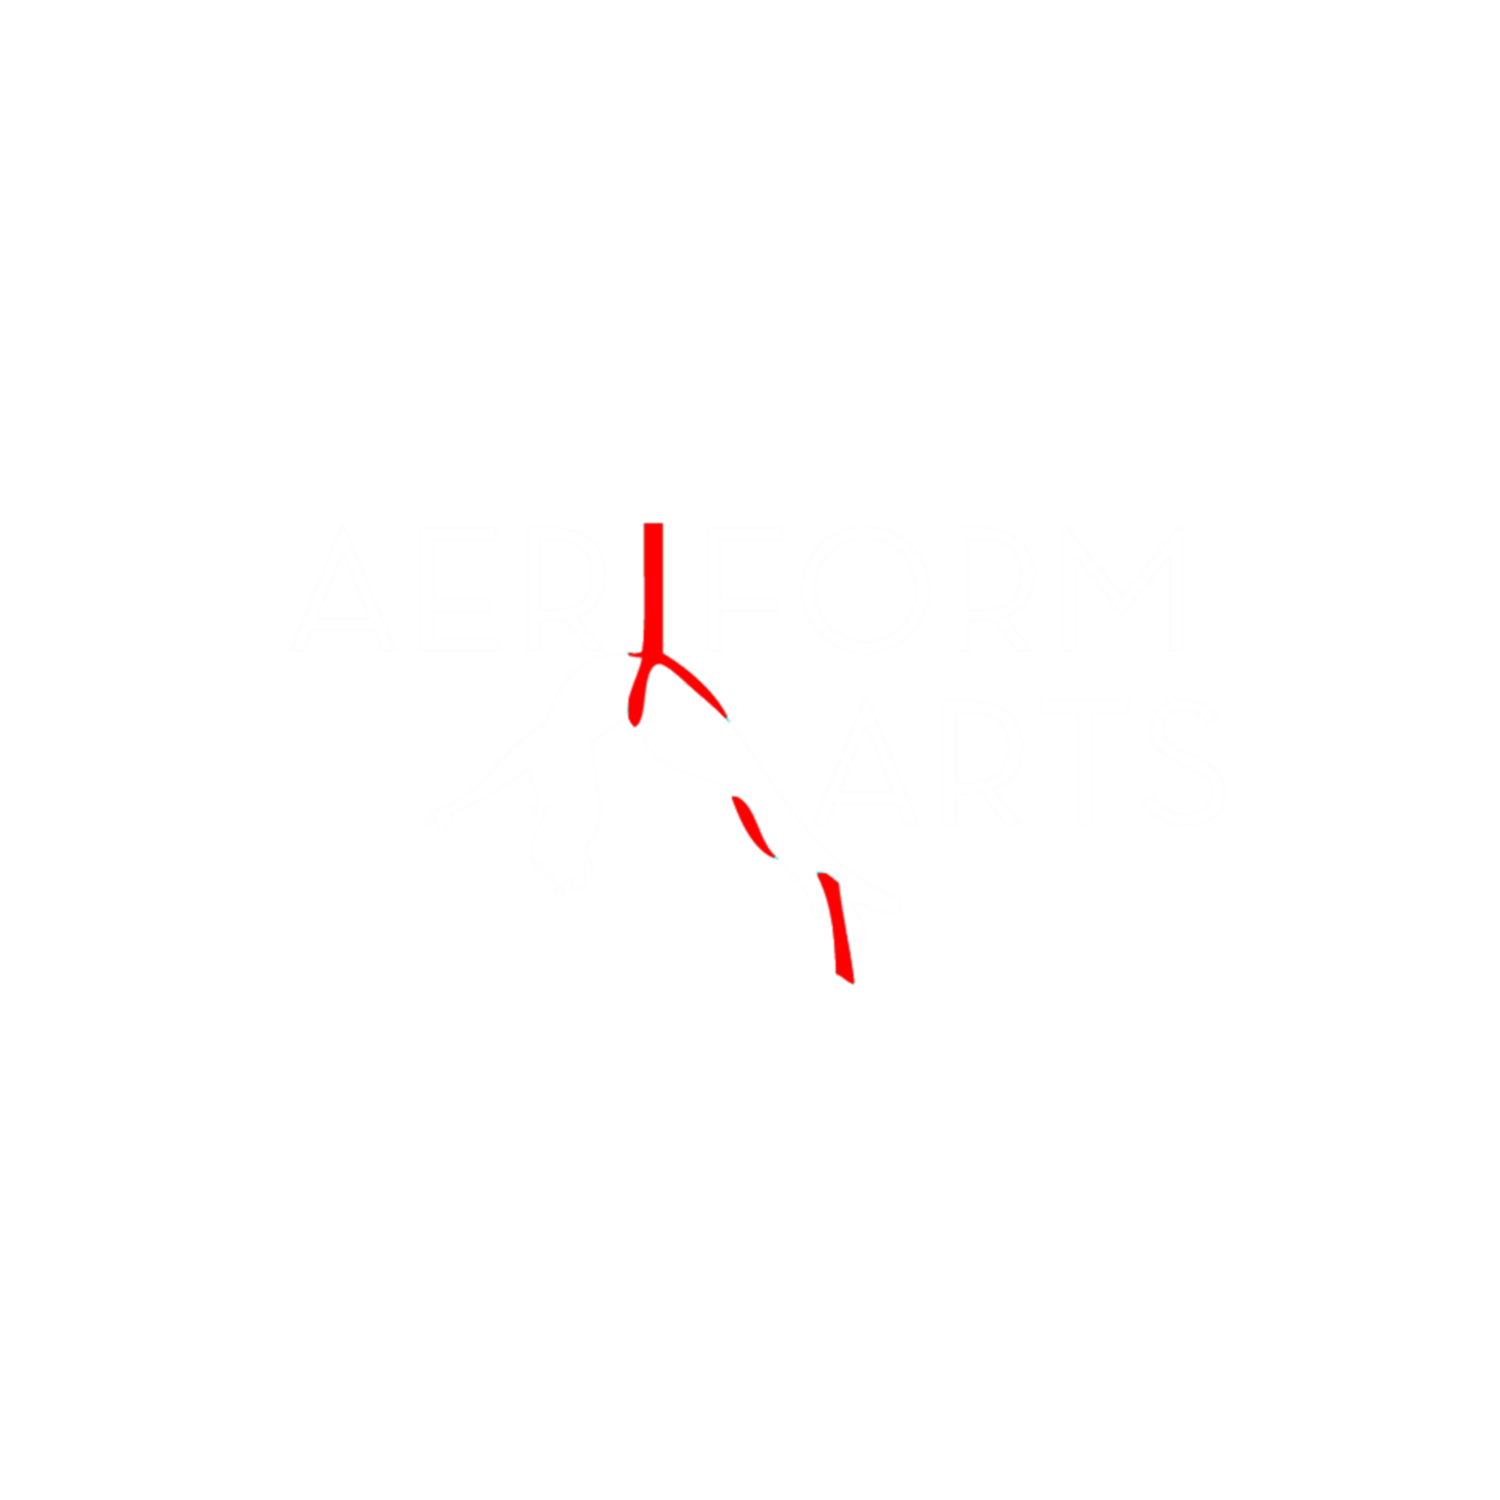 Aeriform Arts